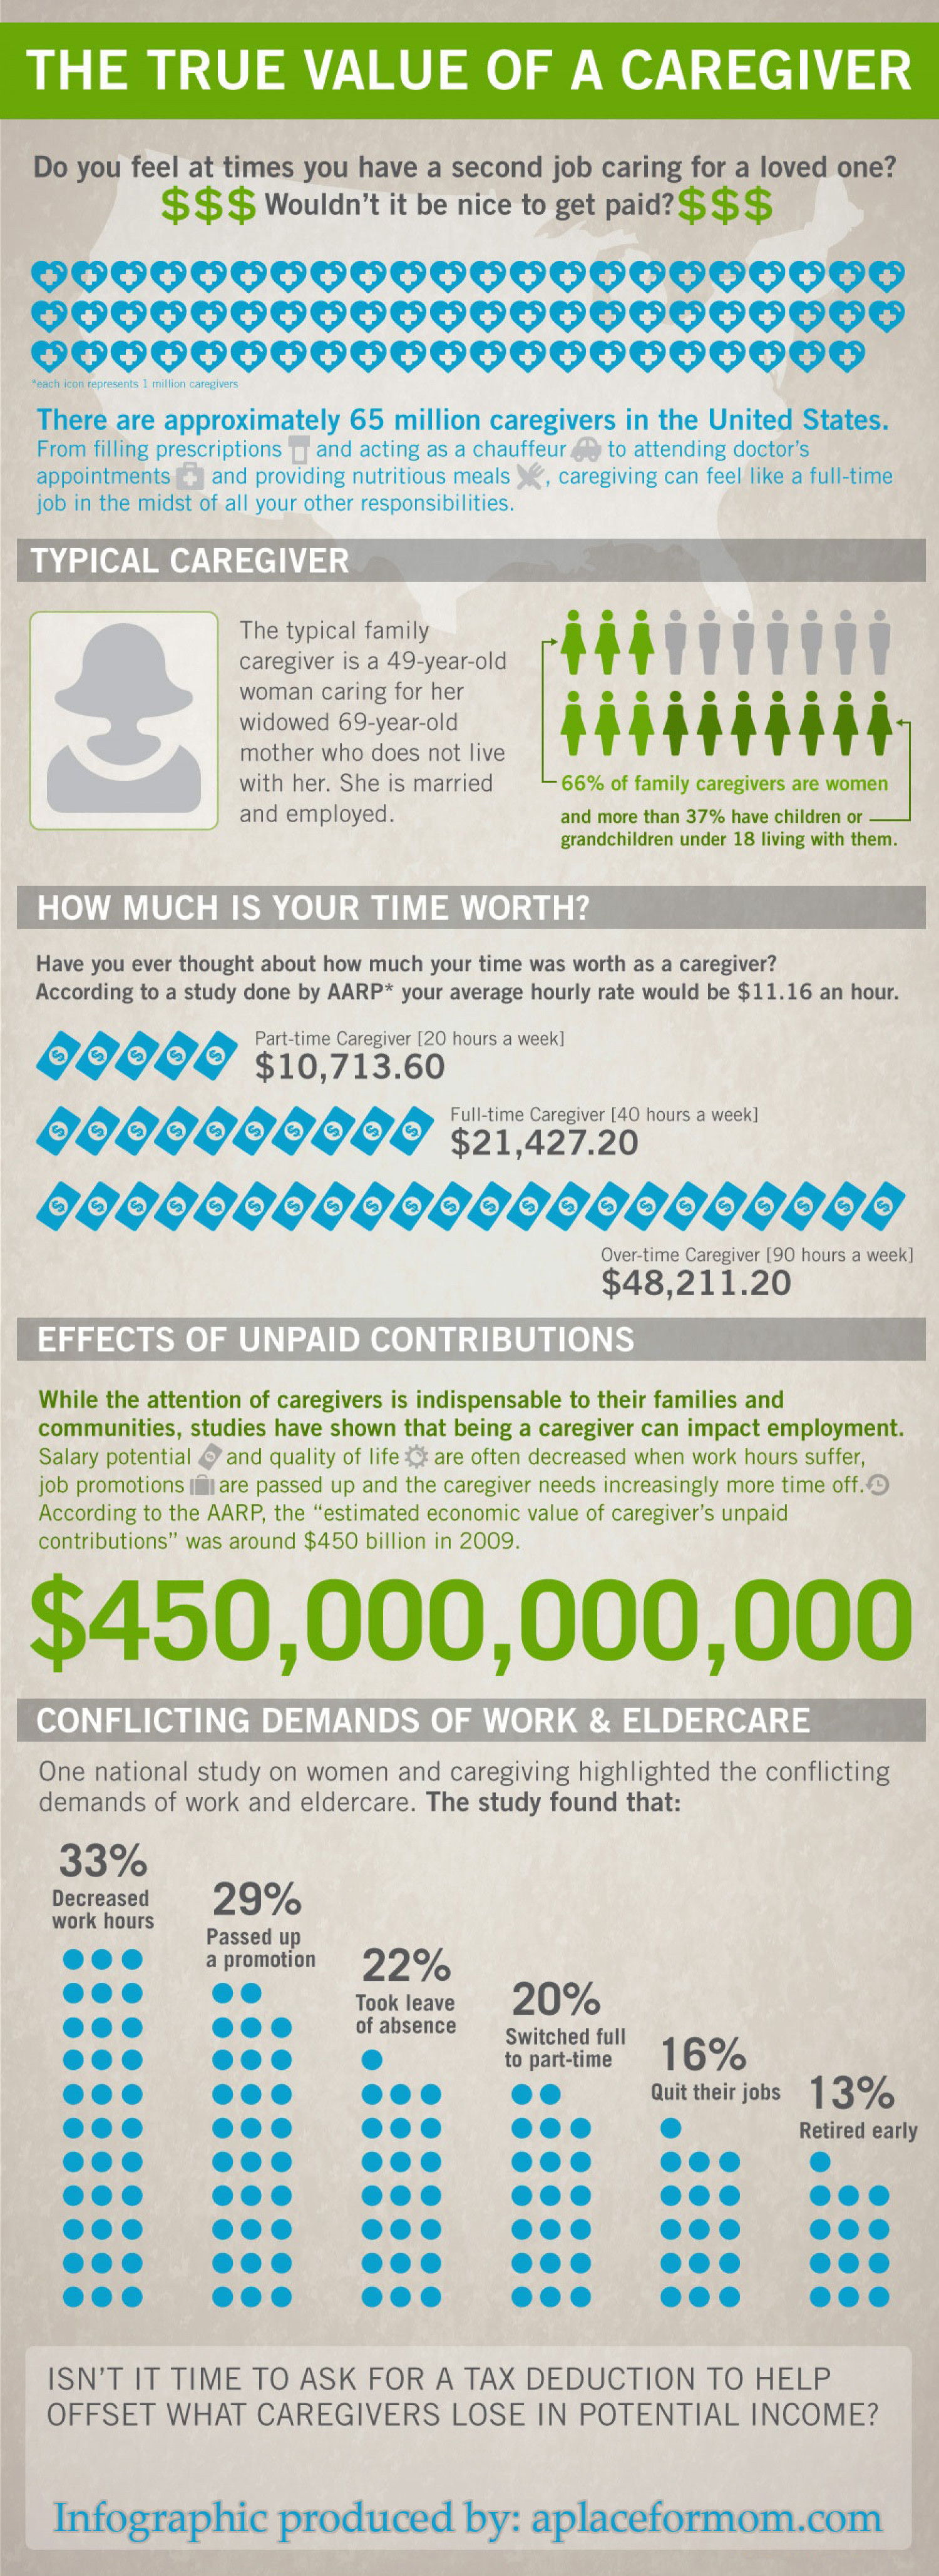 The True Value of a Caregiver Infographic